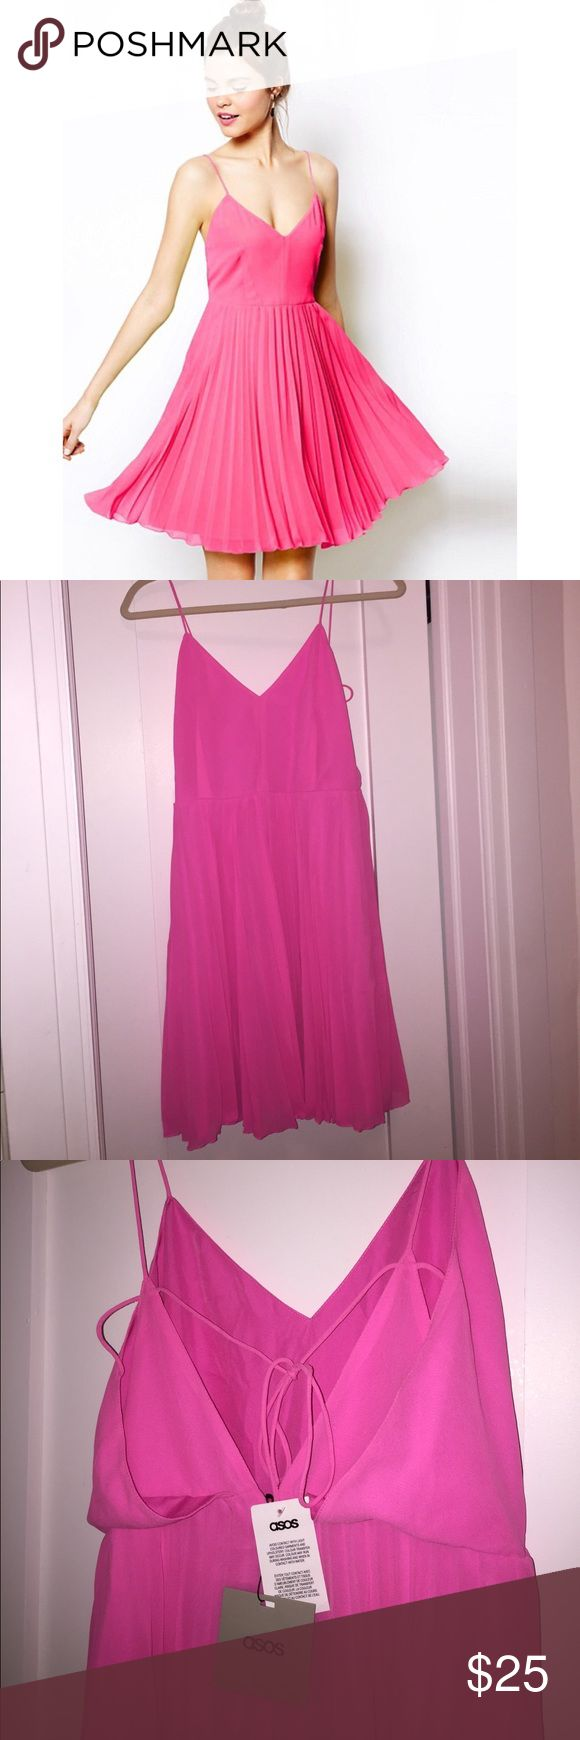 NWT! ASOS pink pleated mini dress NWT Bright pink pleated mini dress. This is the prettiest color and would be perfect for any upcoming vacations 🌴☀️ Back middle zipper, form fitting top and gorgeous flowy bottom (lined). Tie back (see photo for back design). US size 6/UK size. Fits TTS for Asos dresses, it'll be packaged in original Asos item bag. ASOS Dresses Mini